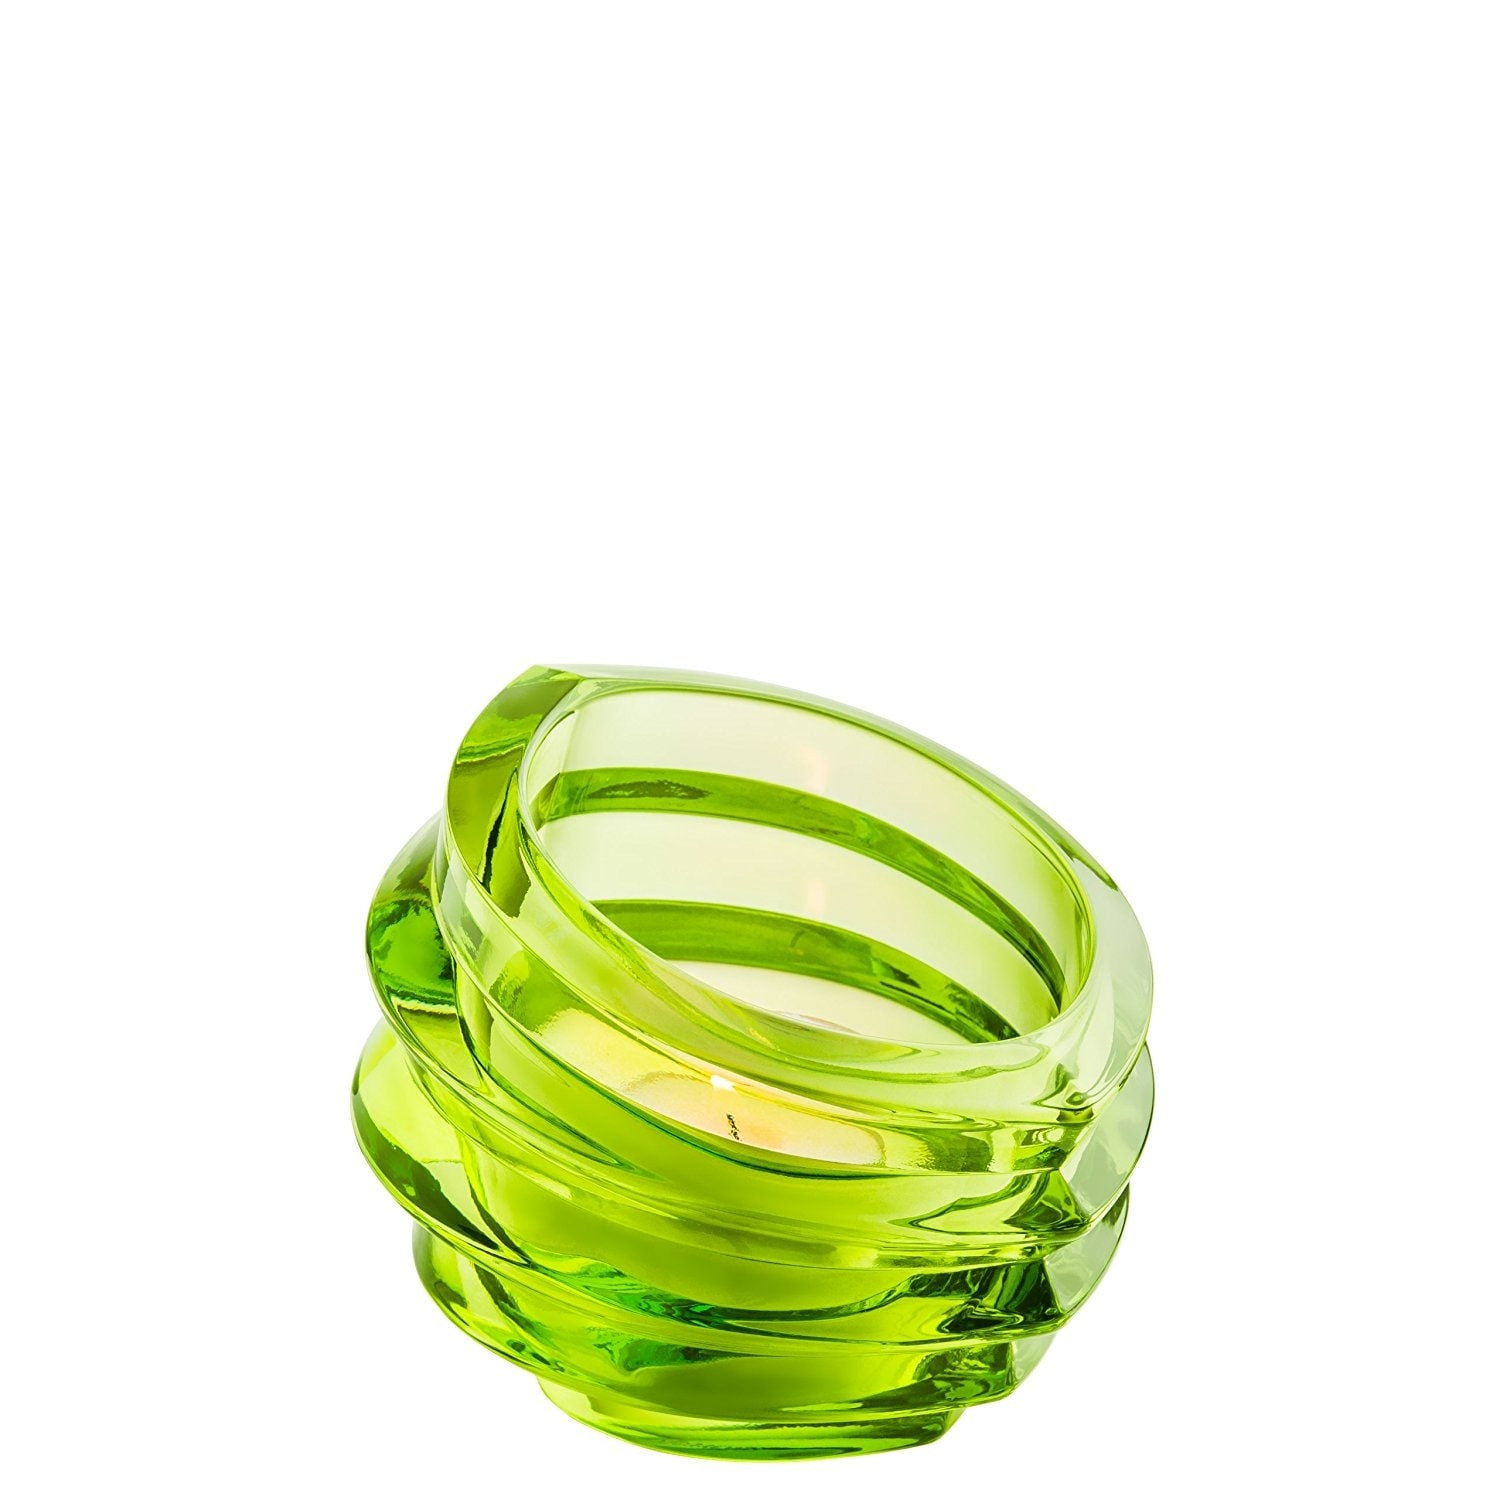 3 Pack Orrefors Eko Crystal Votive Glass Tealight Candleholder Green Candy Dish Candles Boitaloc Candle Holders Accessories